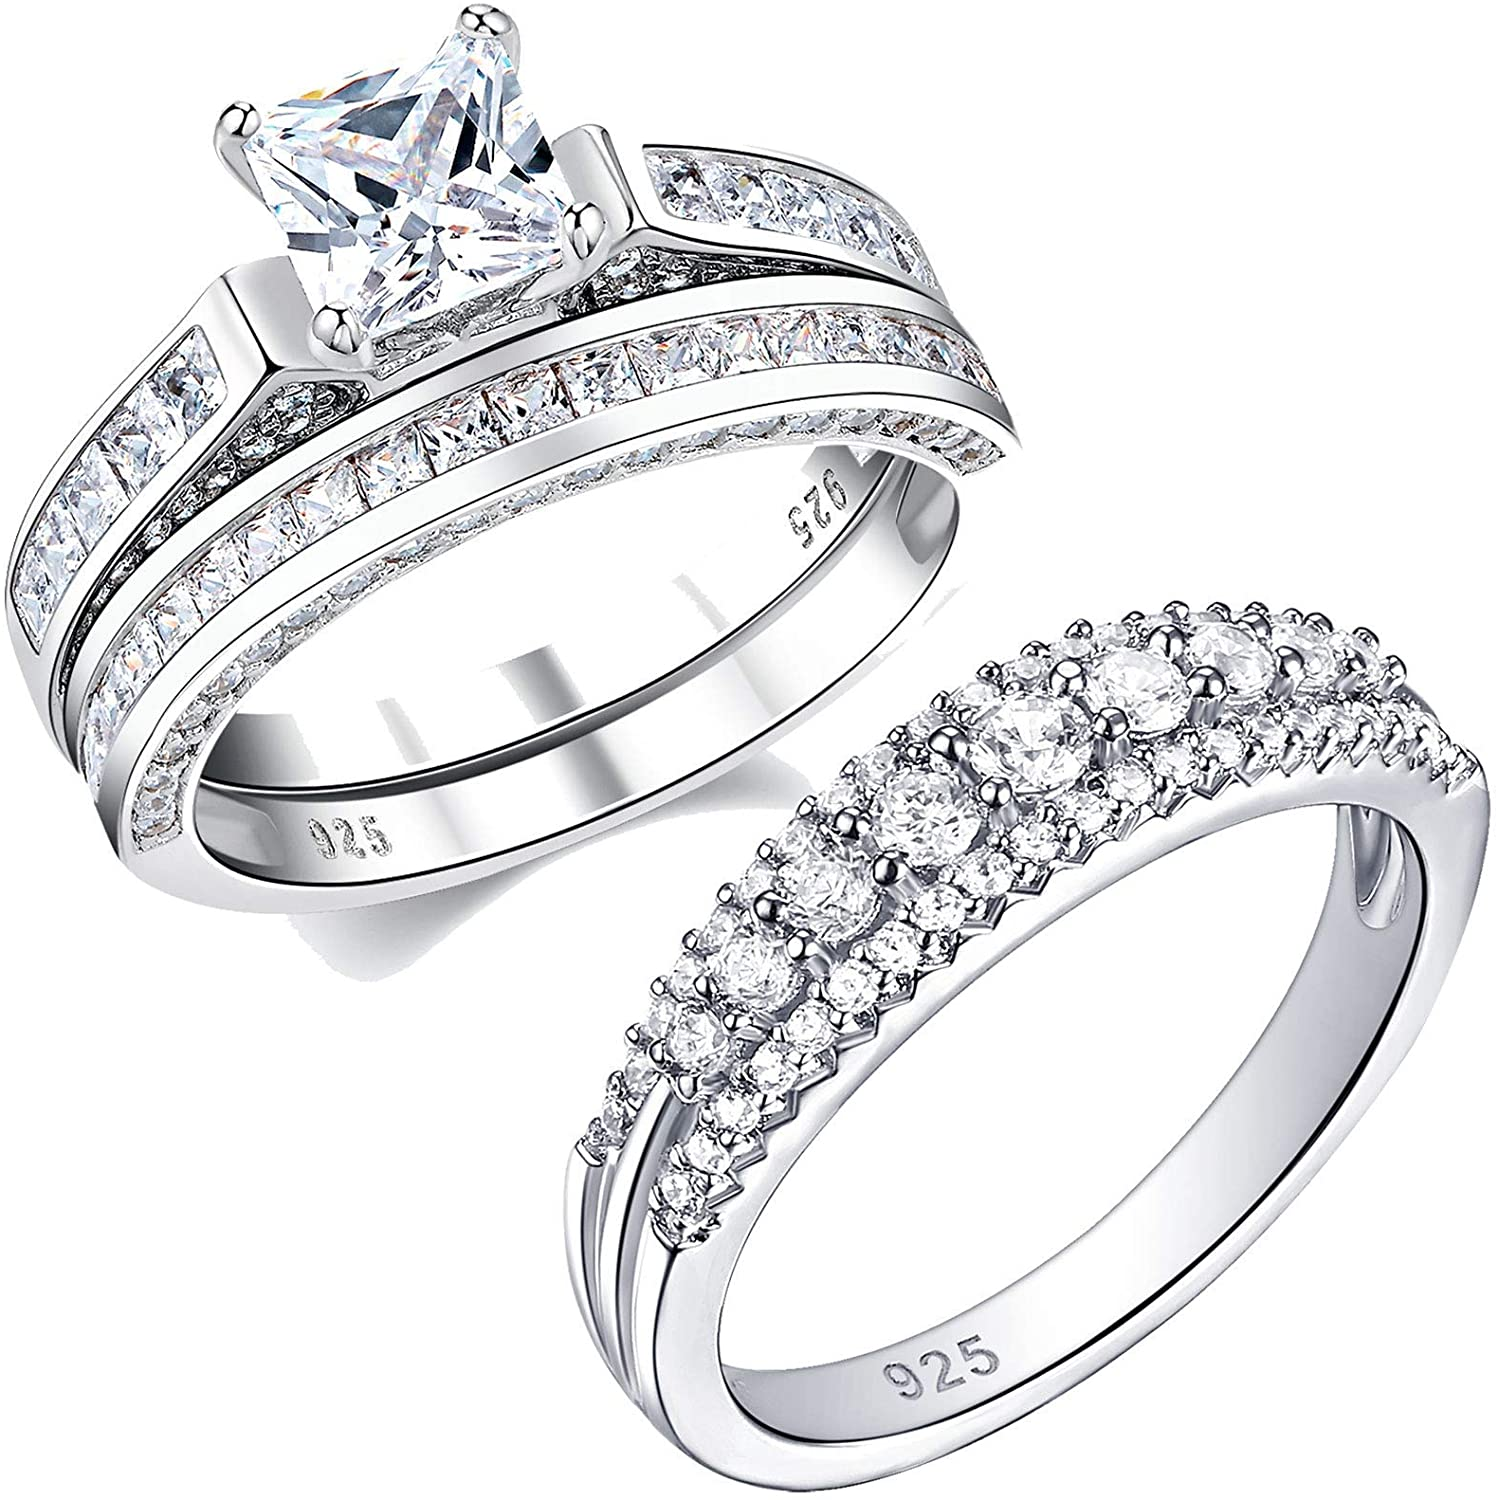 Wuziwen Wedding Rings for Women Cubic Zirconia Cz Sterling Silver Vintage Engagement Ring Bridal Set White Round Cz Eternity Rings 925 Sterling Silver Promise Wedding Band for Women Size 8.5